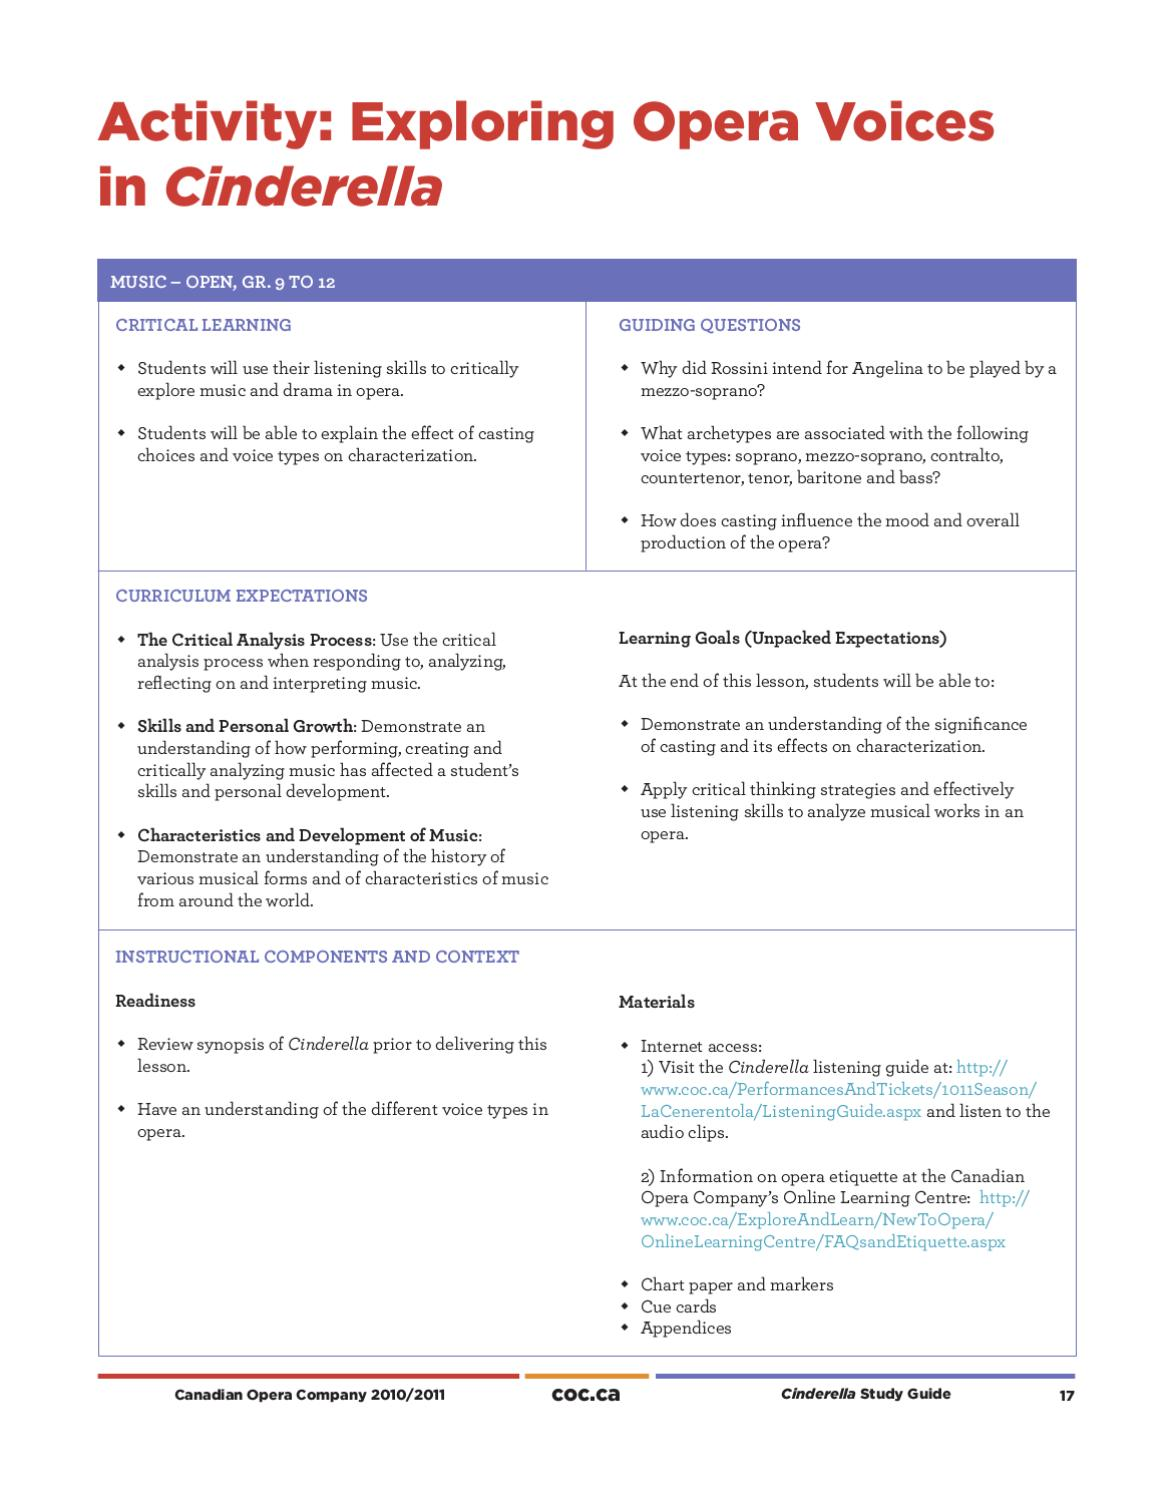 Cinderella Study Guide by Canadian Opera Company - issuu